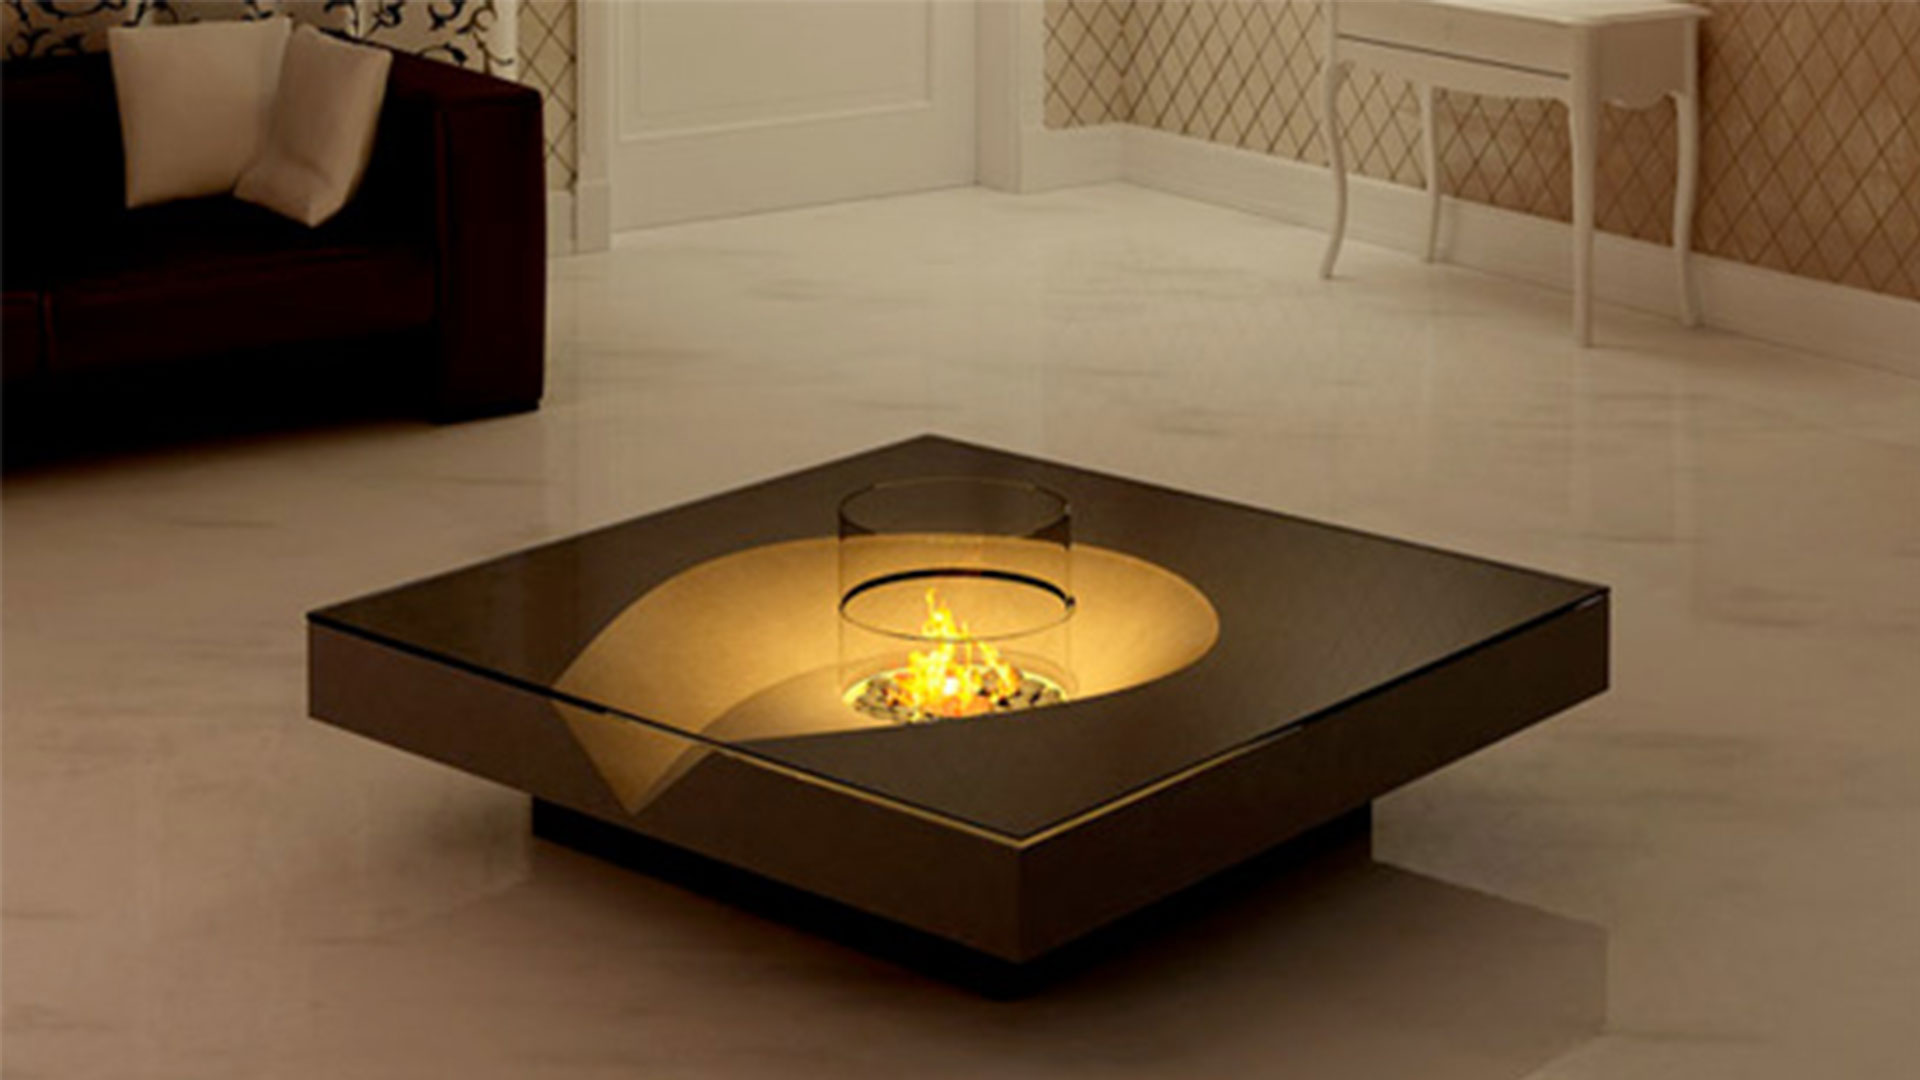 Add Small Fire Pit in Modern Square Coffee Table inside Classic Sitting Area with White Console Table